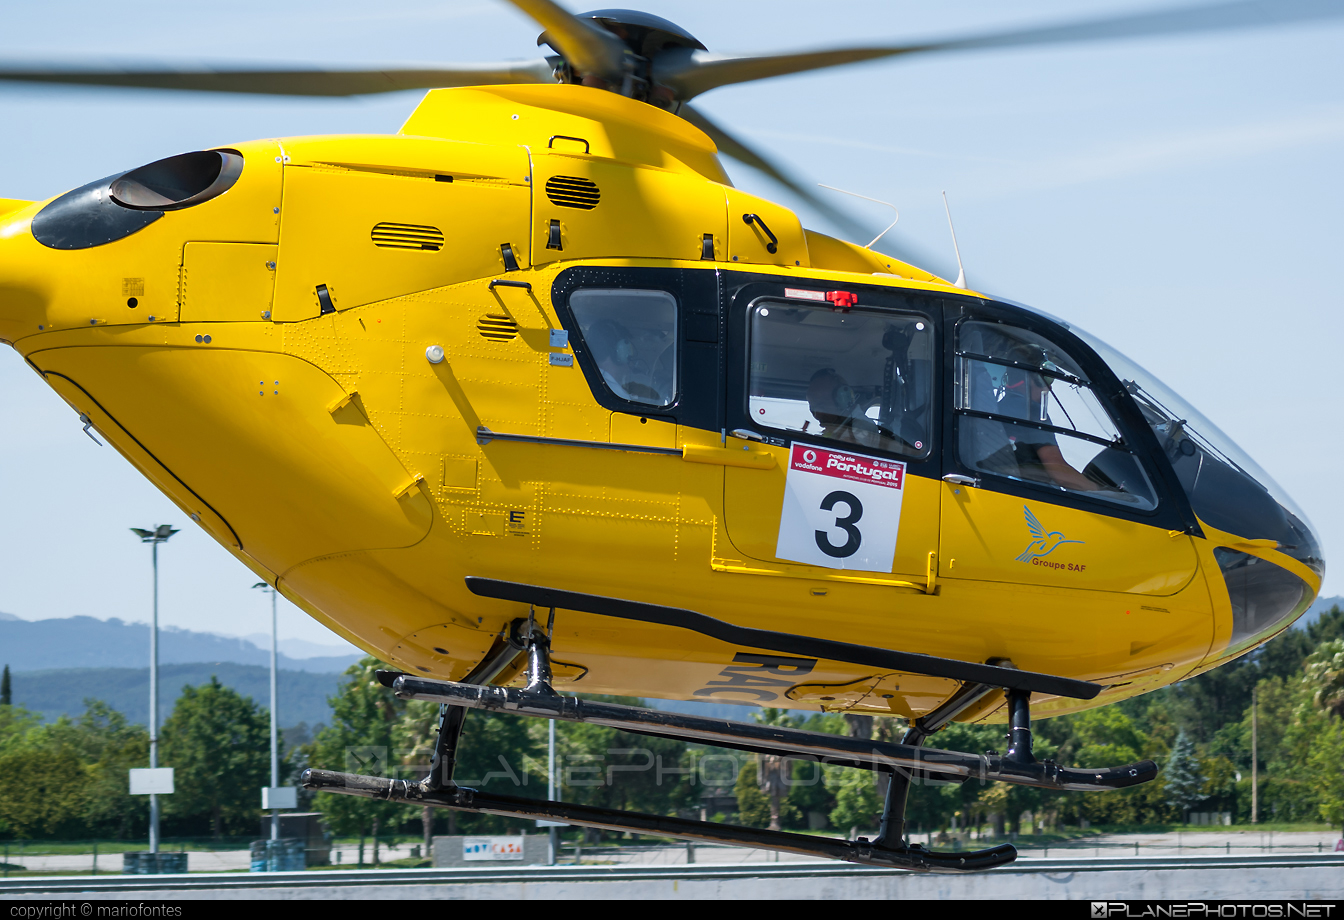 Airbus Helicopters H135 - F-HJAF operated by SAF Hélicoptères #airbushelicopters #safhelicopteres #secoursaerienfrancais